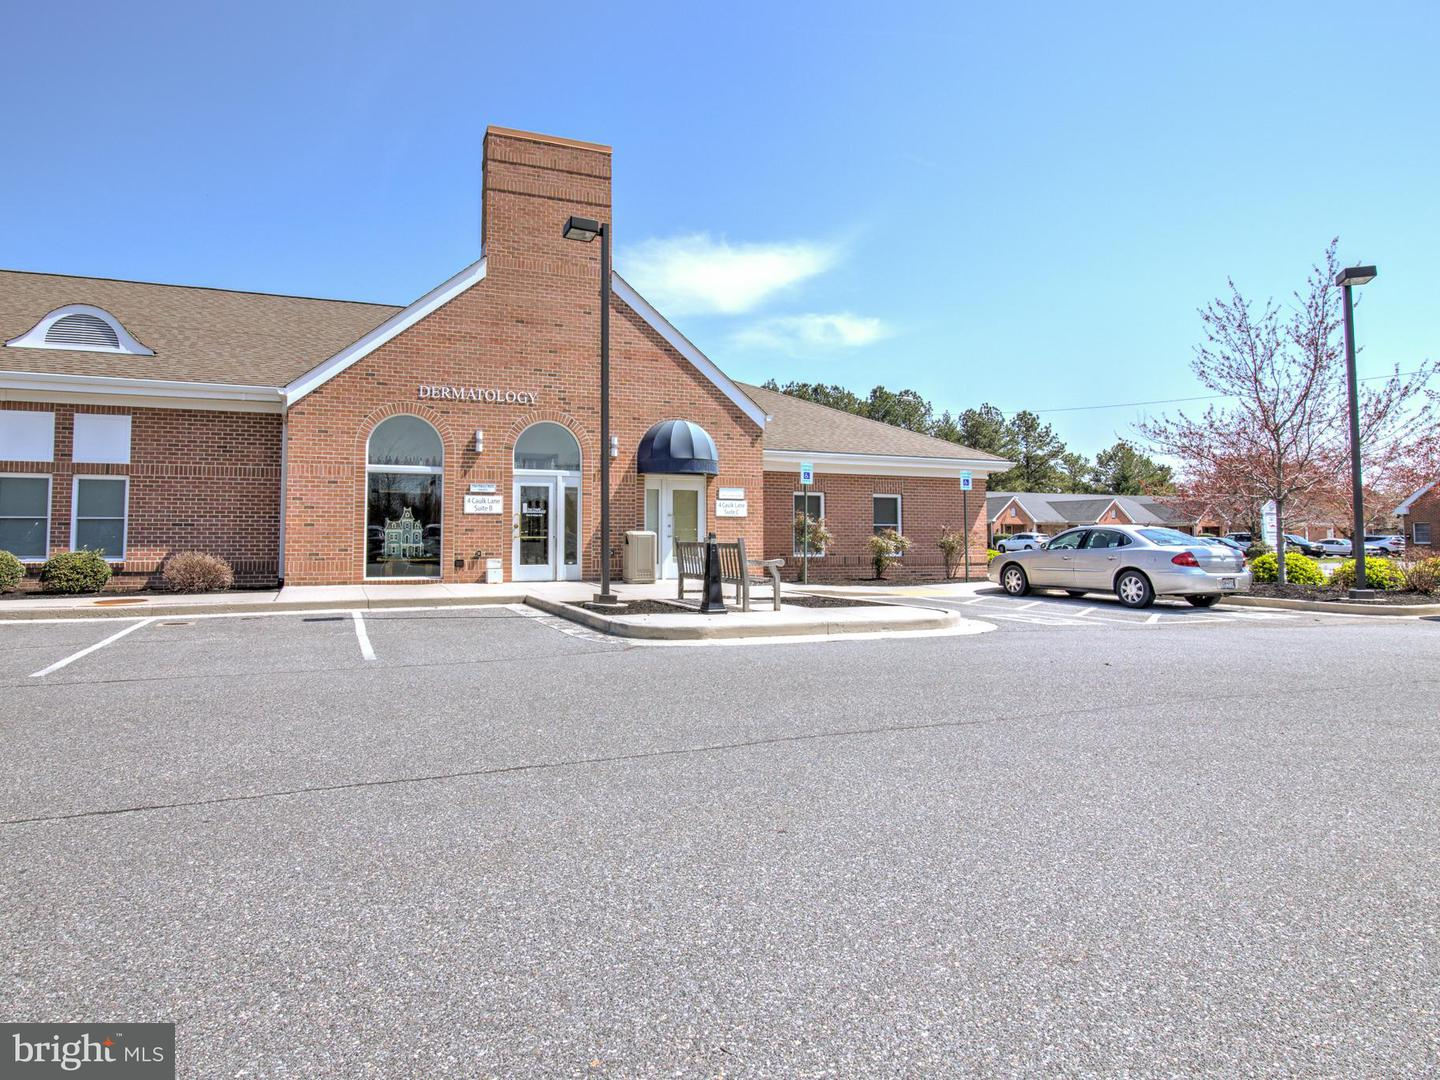 Commercial for Sale at 4 Caulk Ln #c Easton, Maryland 21601 United States